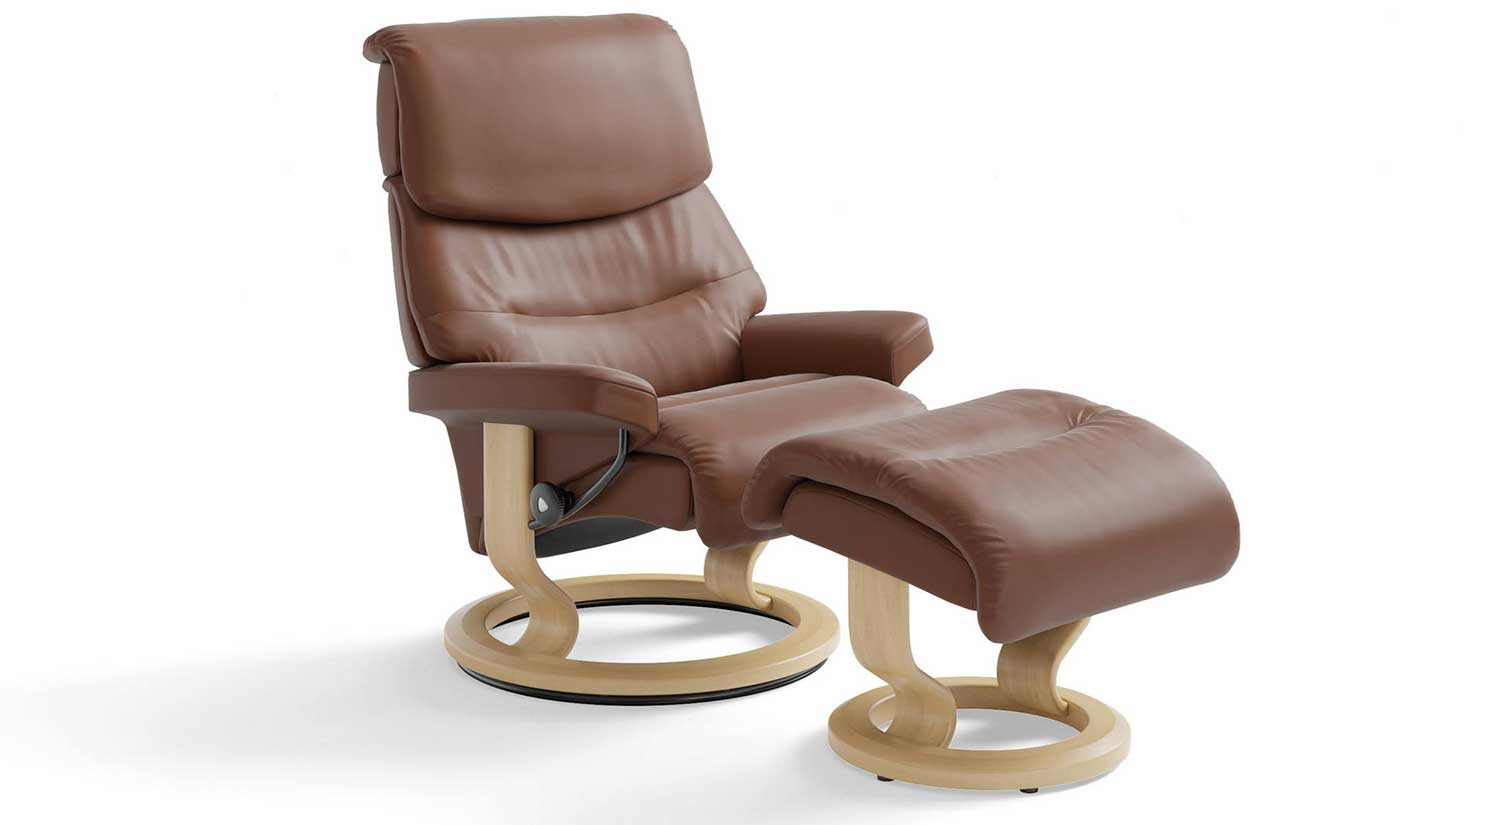 Circle Furniture - Capri Stressless Chair  Stressless Recliners ...